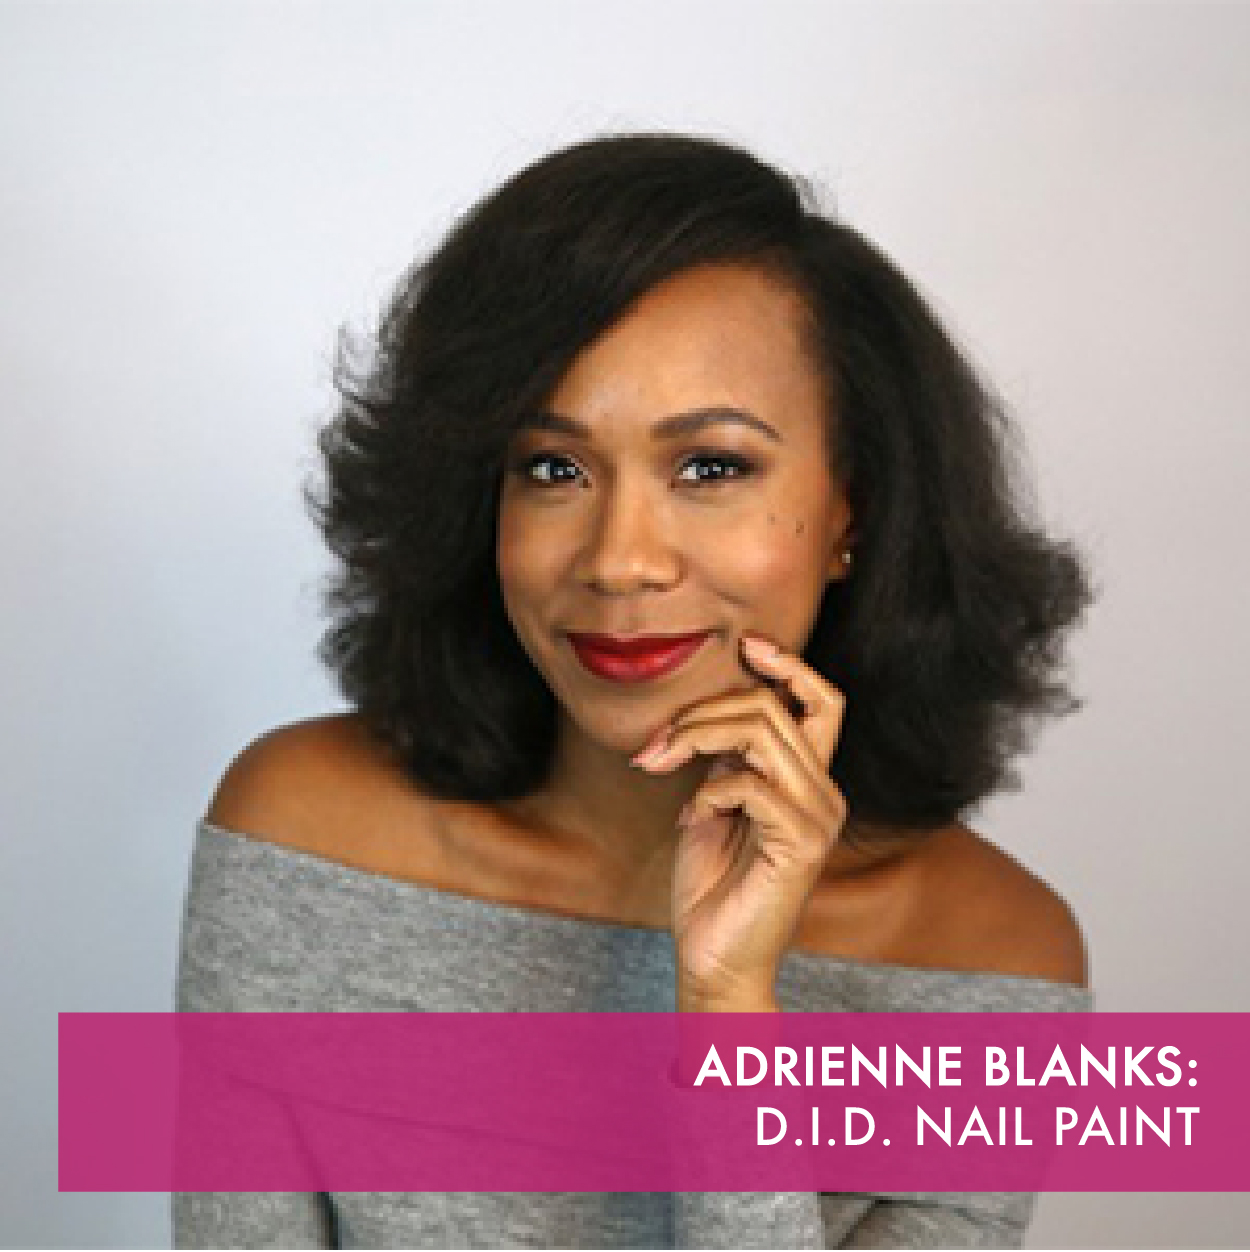 D.I.D. Nail Paint is a highly pigmented, eco-friendly nail color collection that complements skin tone without harmful formaldehyde, formaldehyde resin, toluen, dibutyl phthalate or camphor.